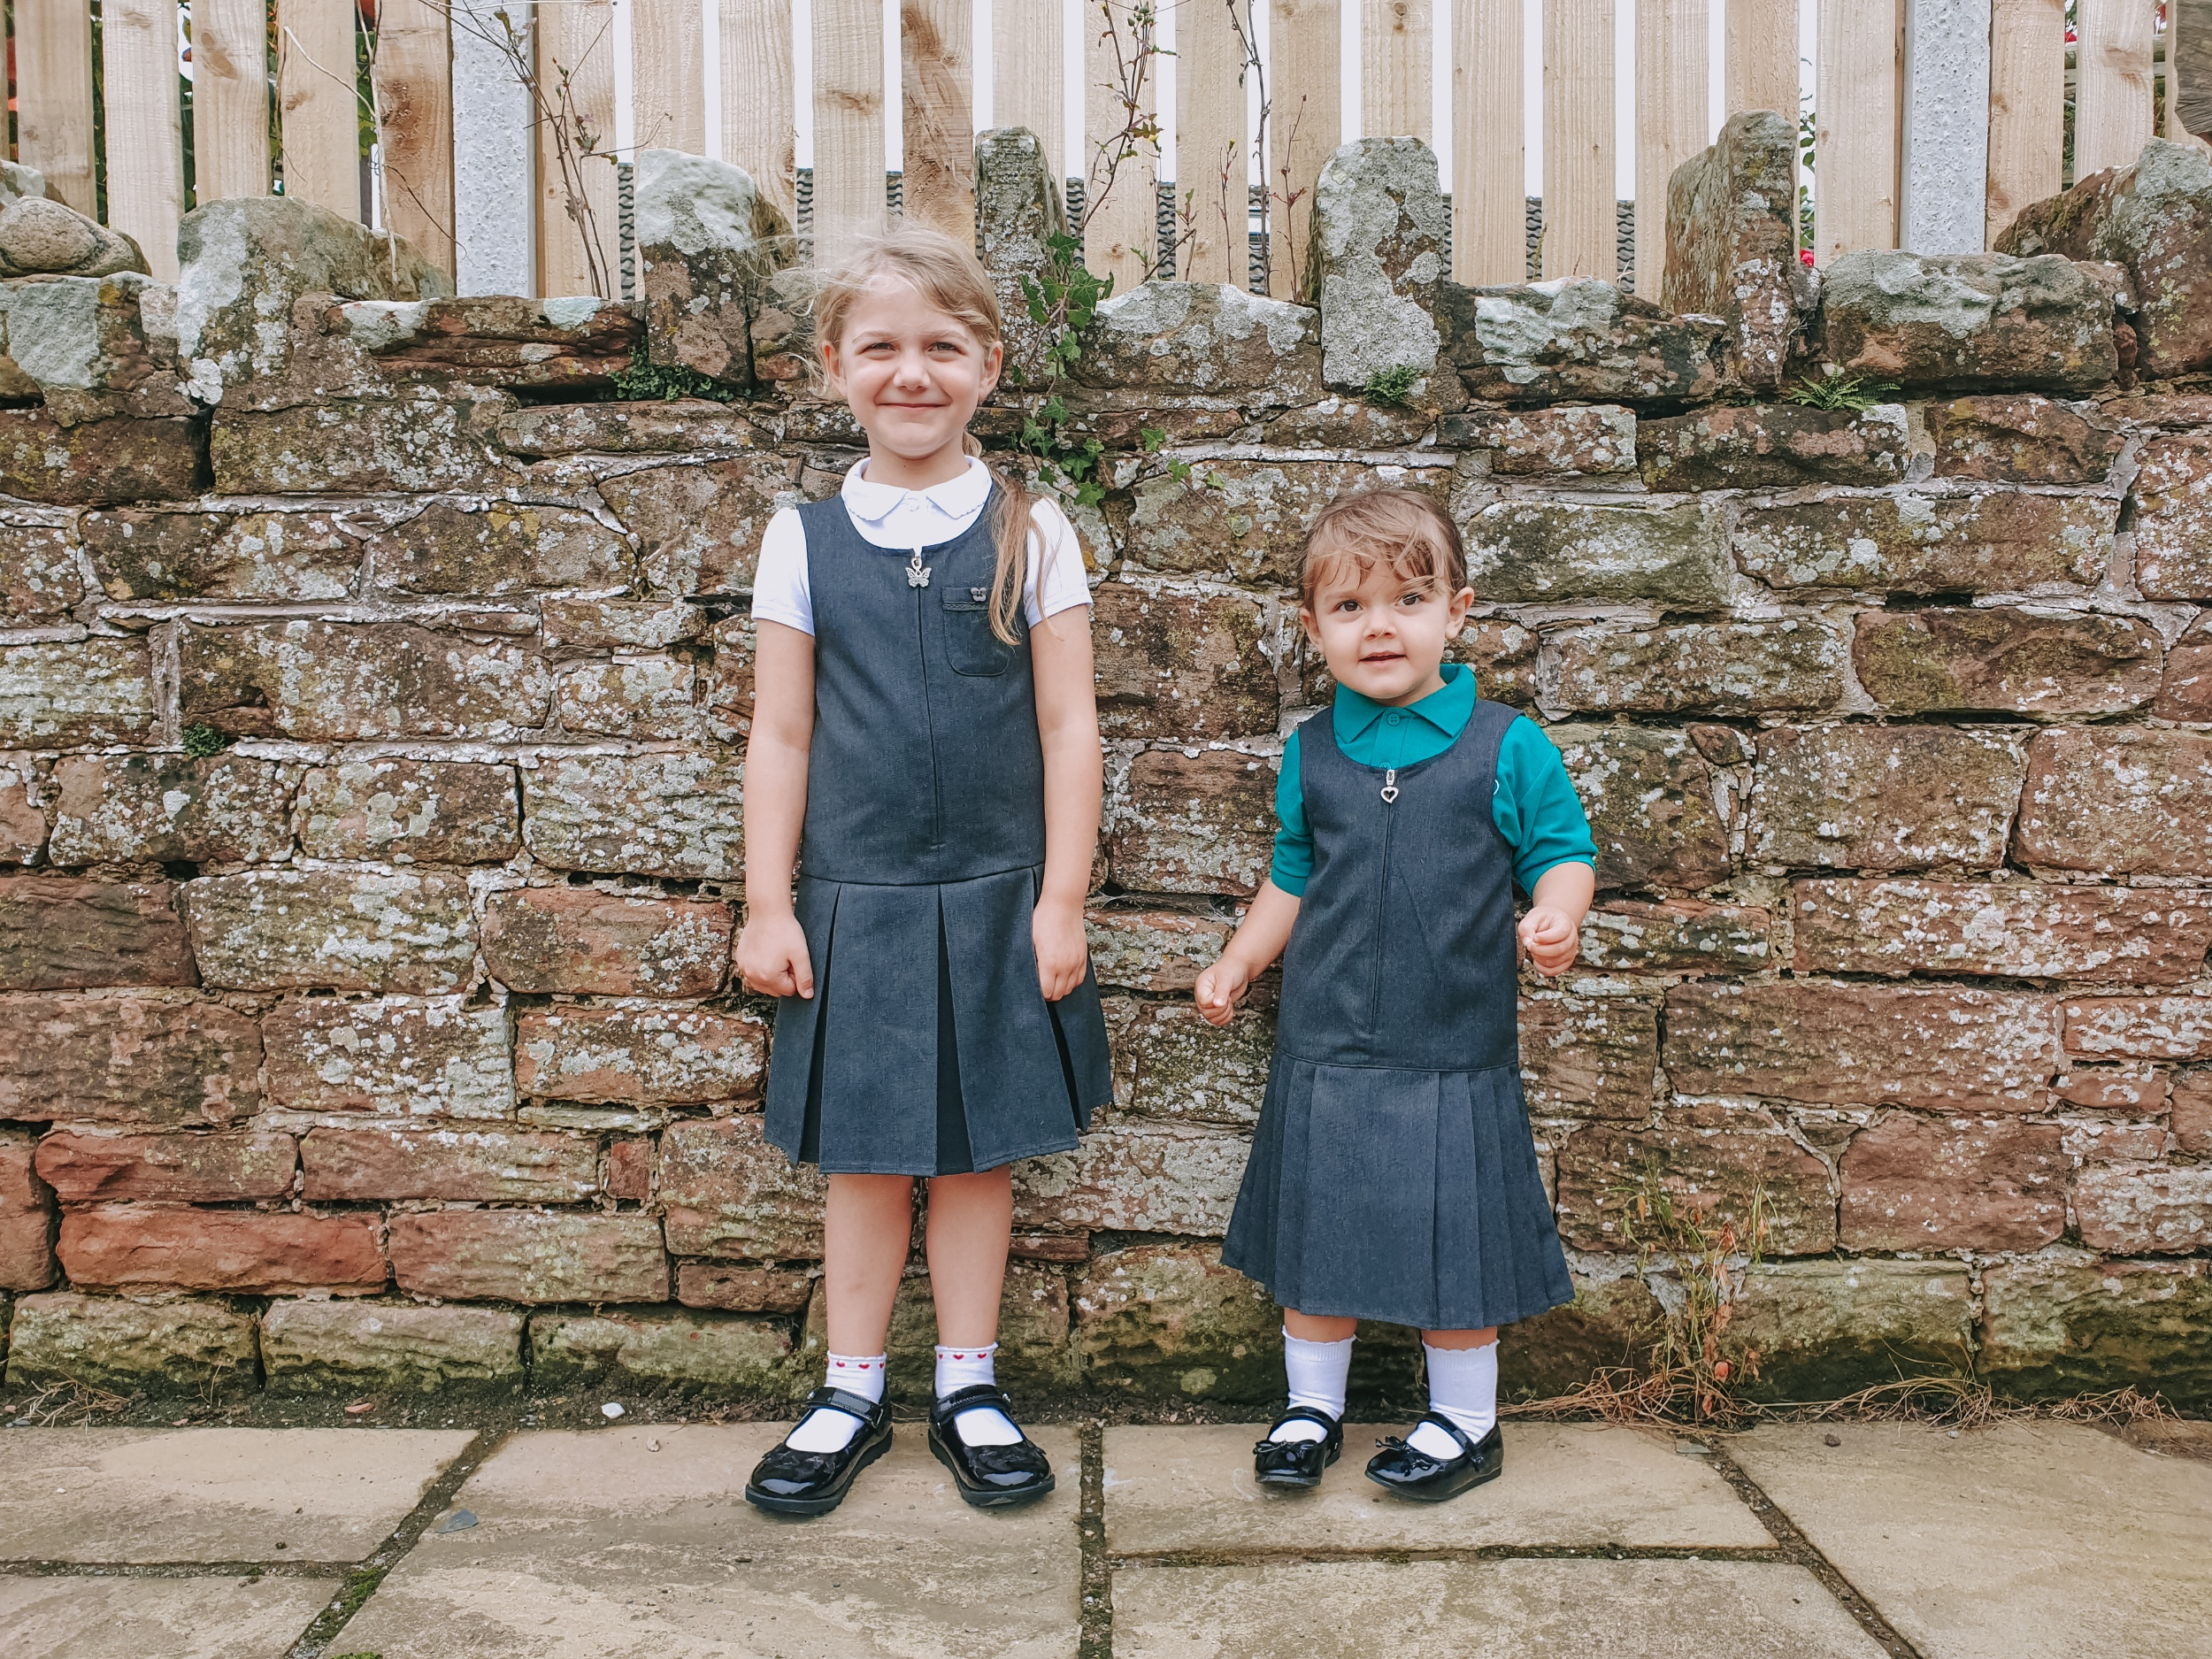 Supermarket school uniform from Sainsbury's TU and George at Asda